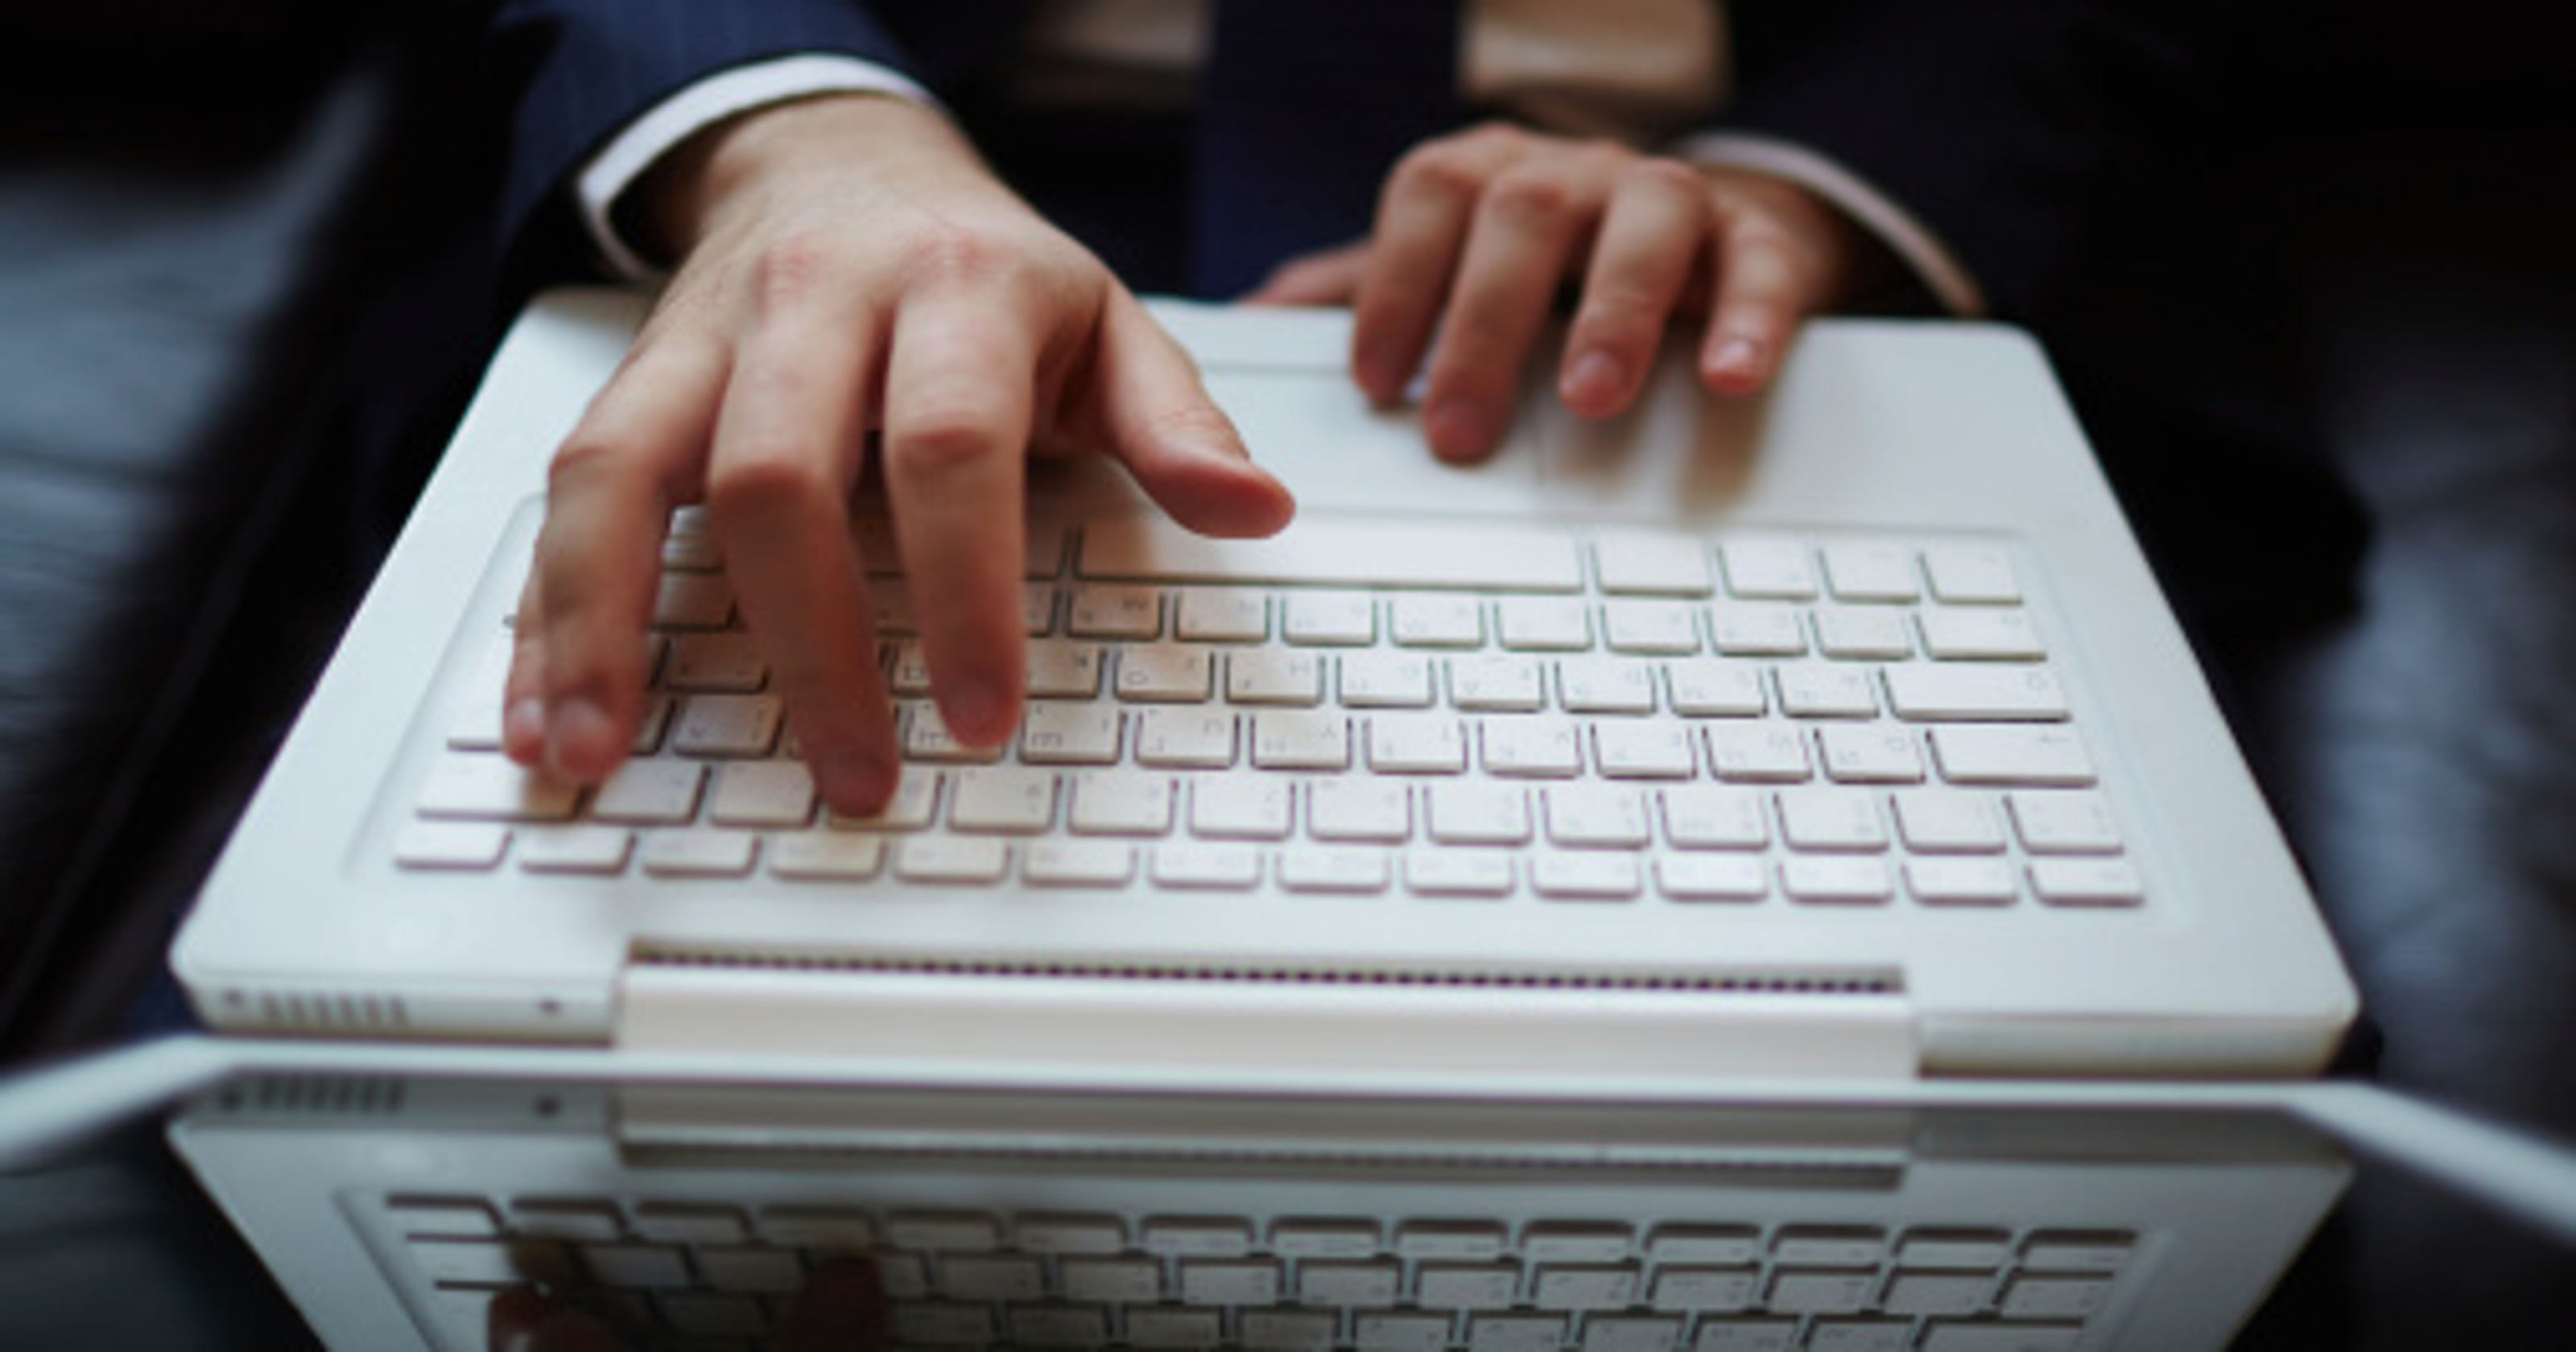 Divorcing? 5 things to do online now